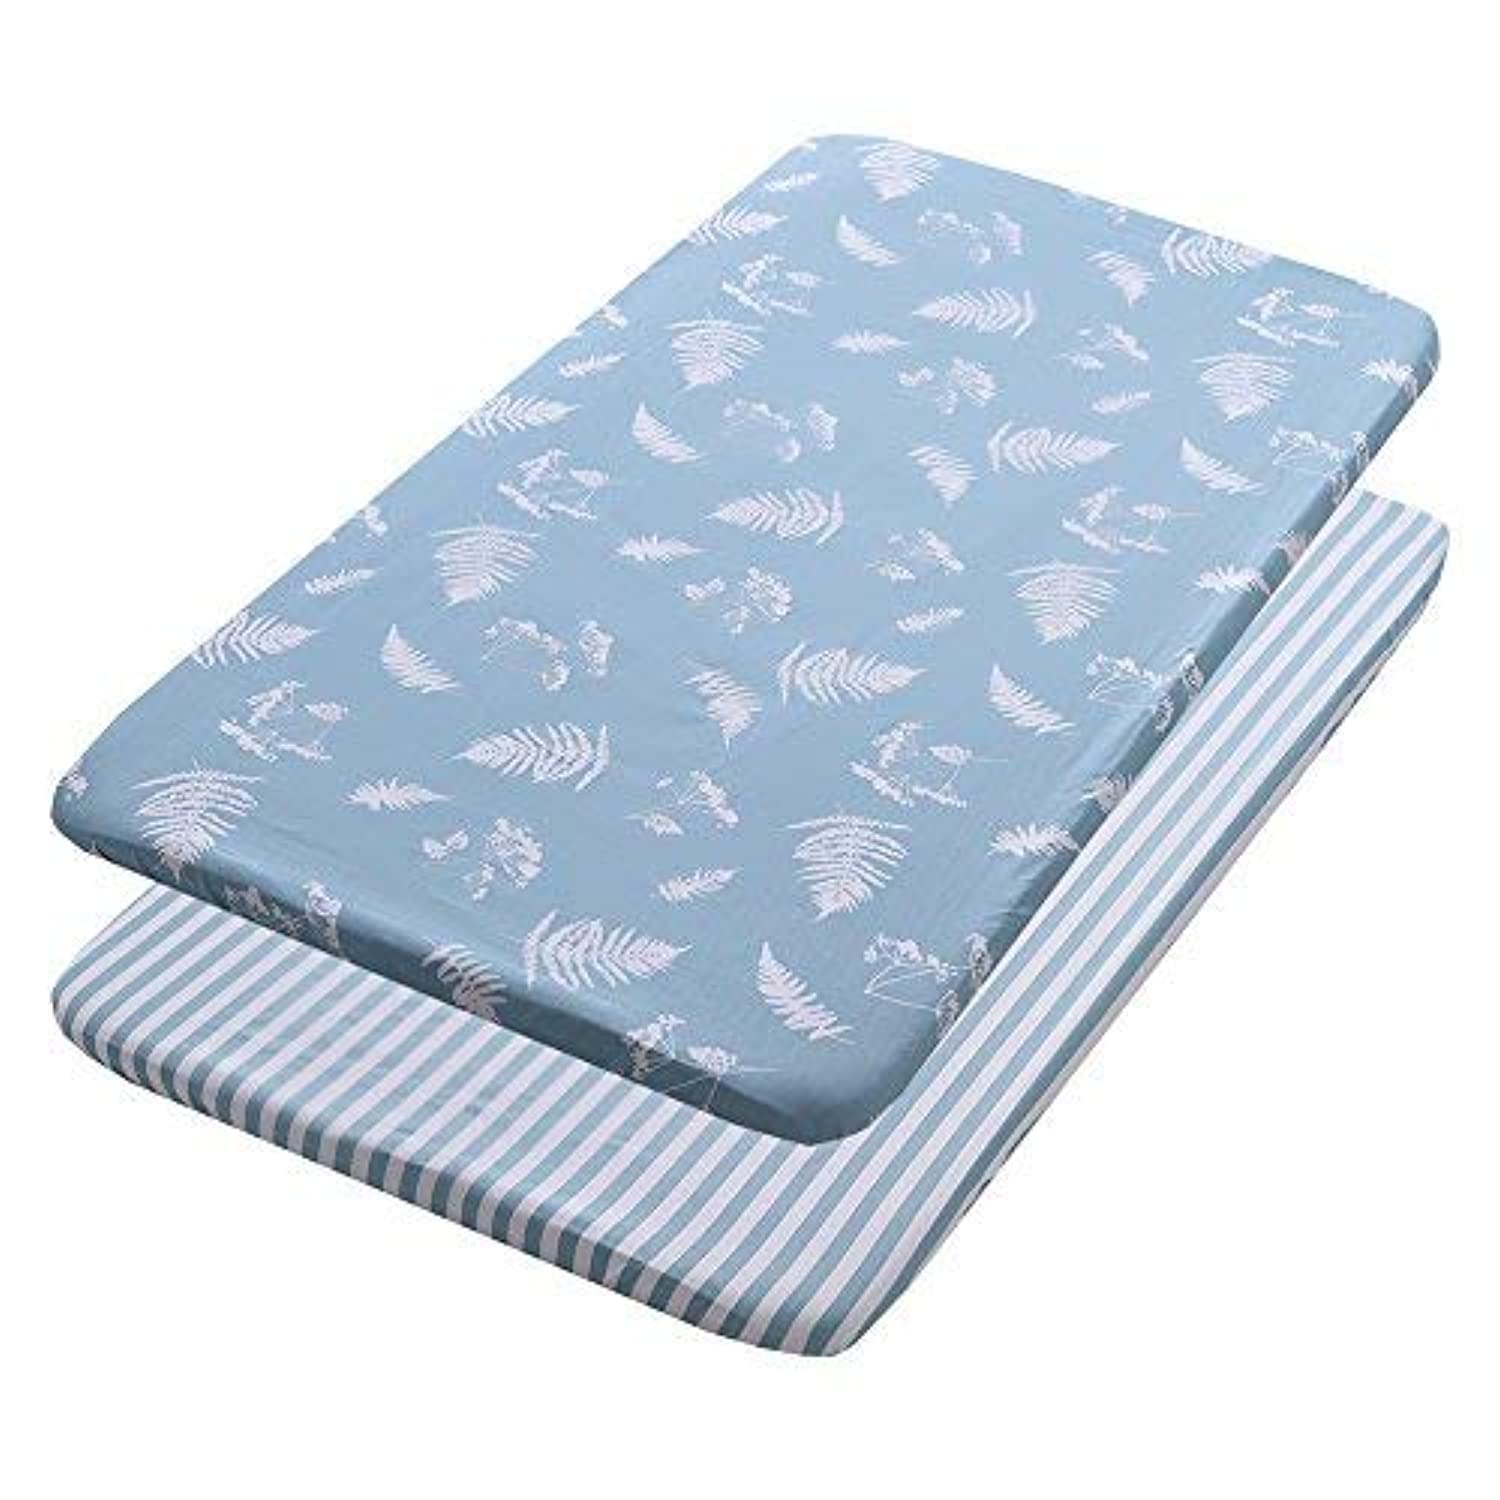 Gina Era Play Portable Crib Sheet Set 100% Jersey Cotton Unisex for Baby Girl and Boy2 Pack(style14) [並行輸入品]